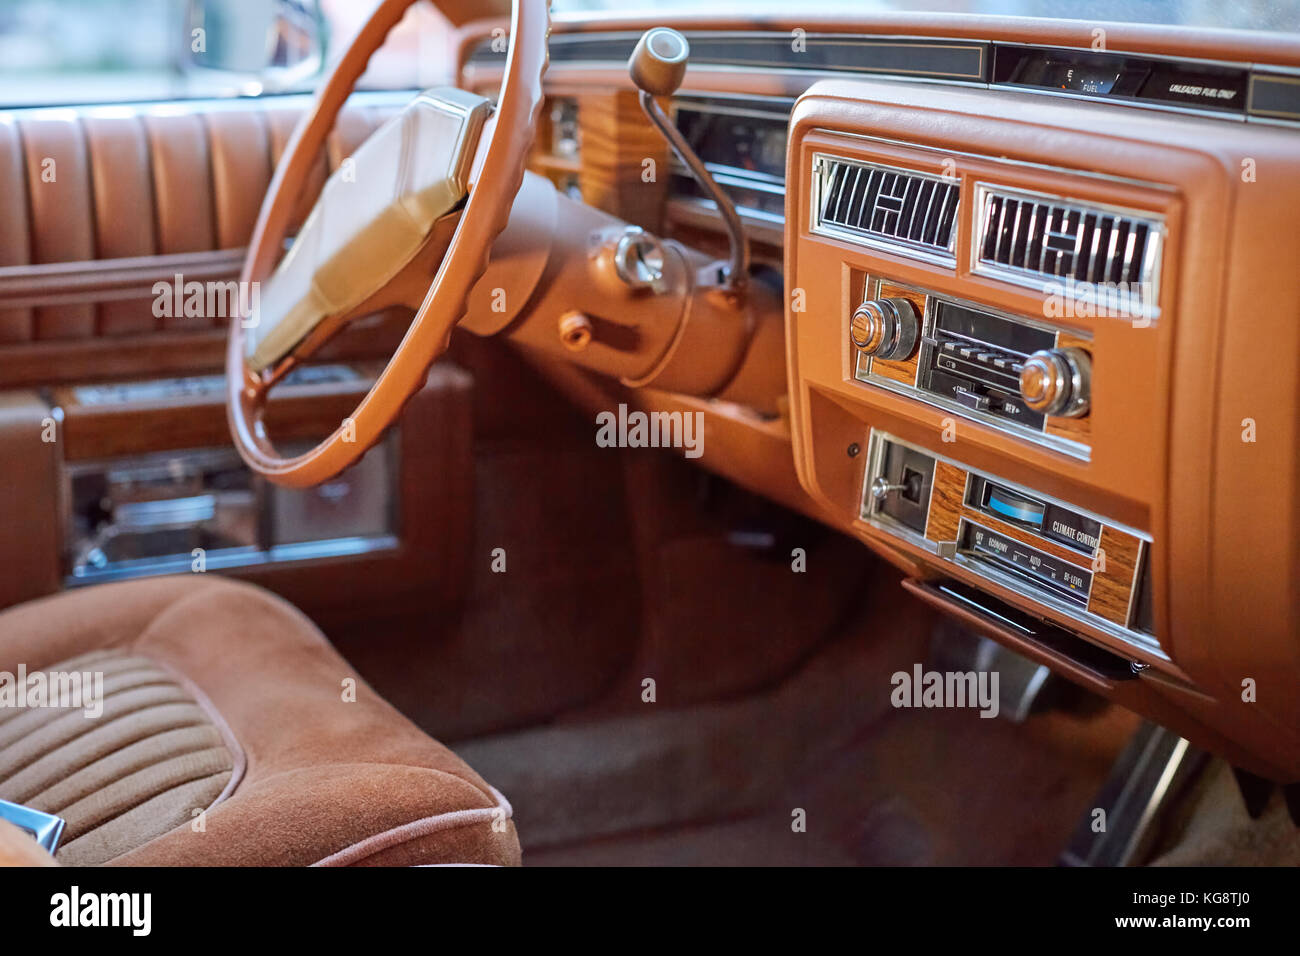 classic american car dash board stock photos classic american car dash board stock images alamy. Black Bedroom Furniture Sets. Home Design Ideas